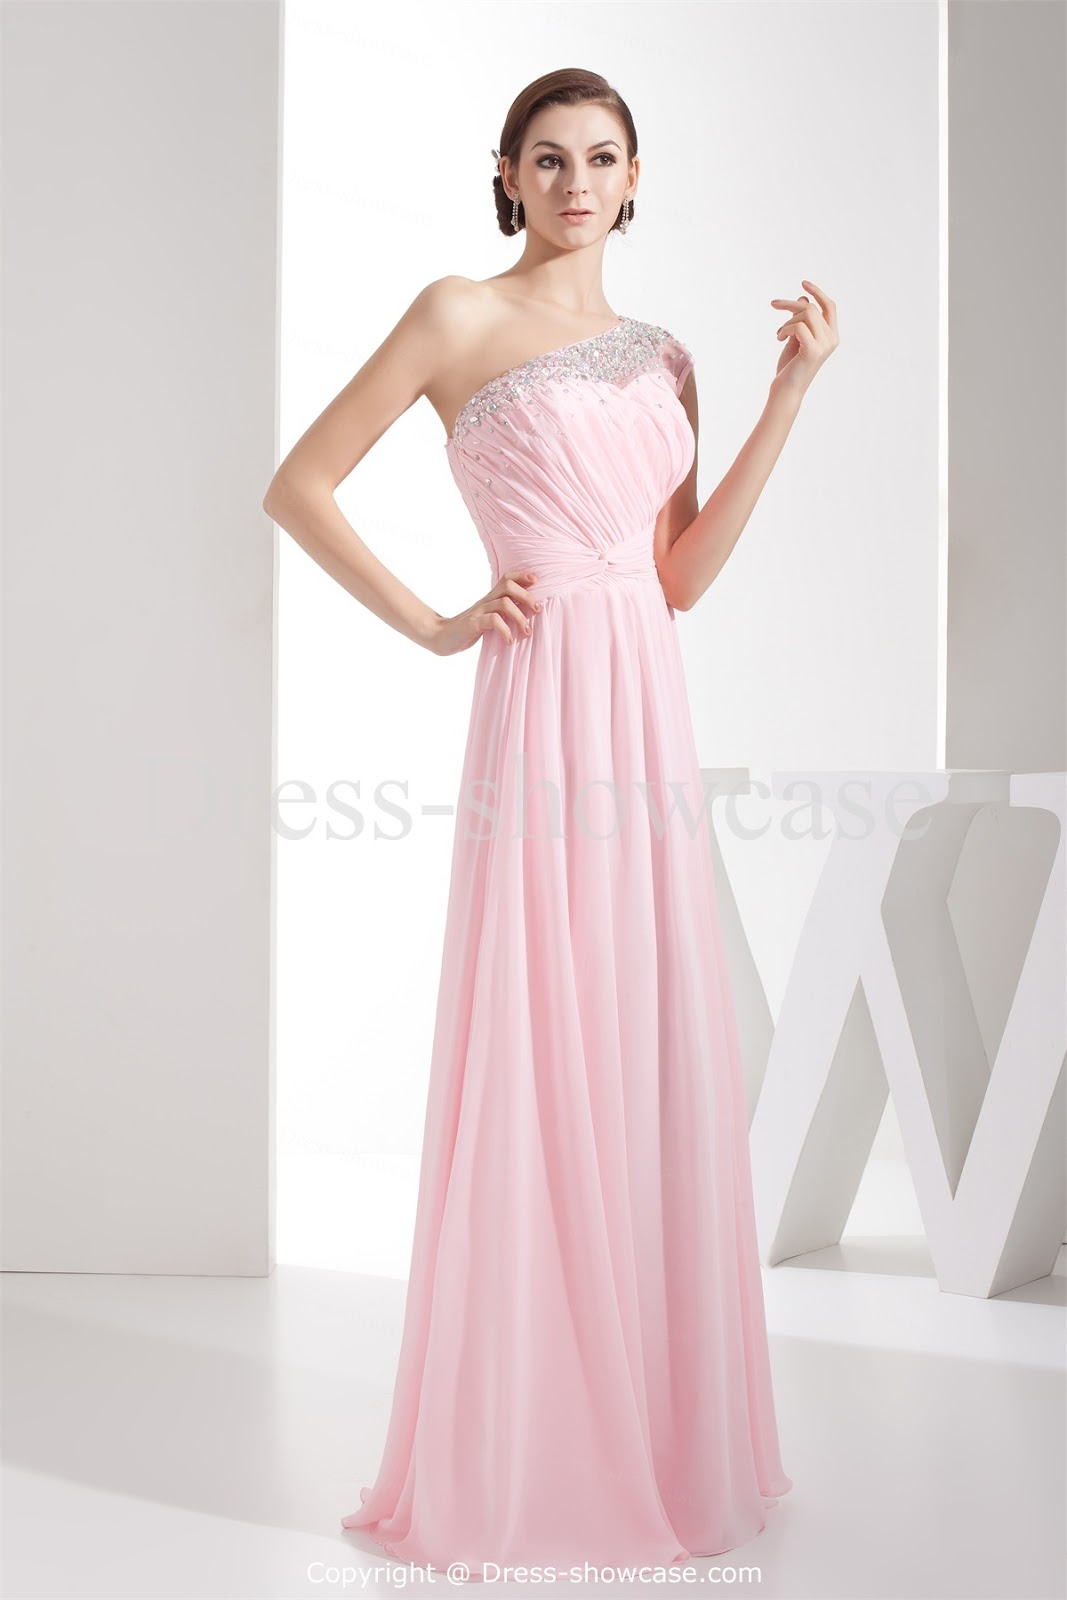 wedding dresses ebay usa wedding dress ebay Pink wedding dresses